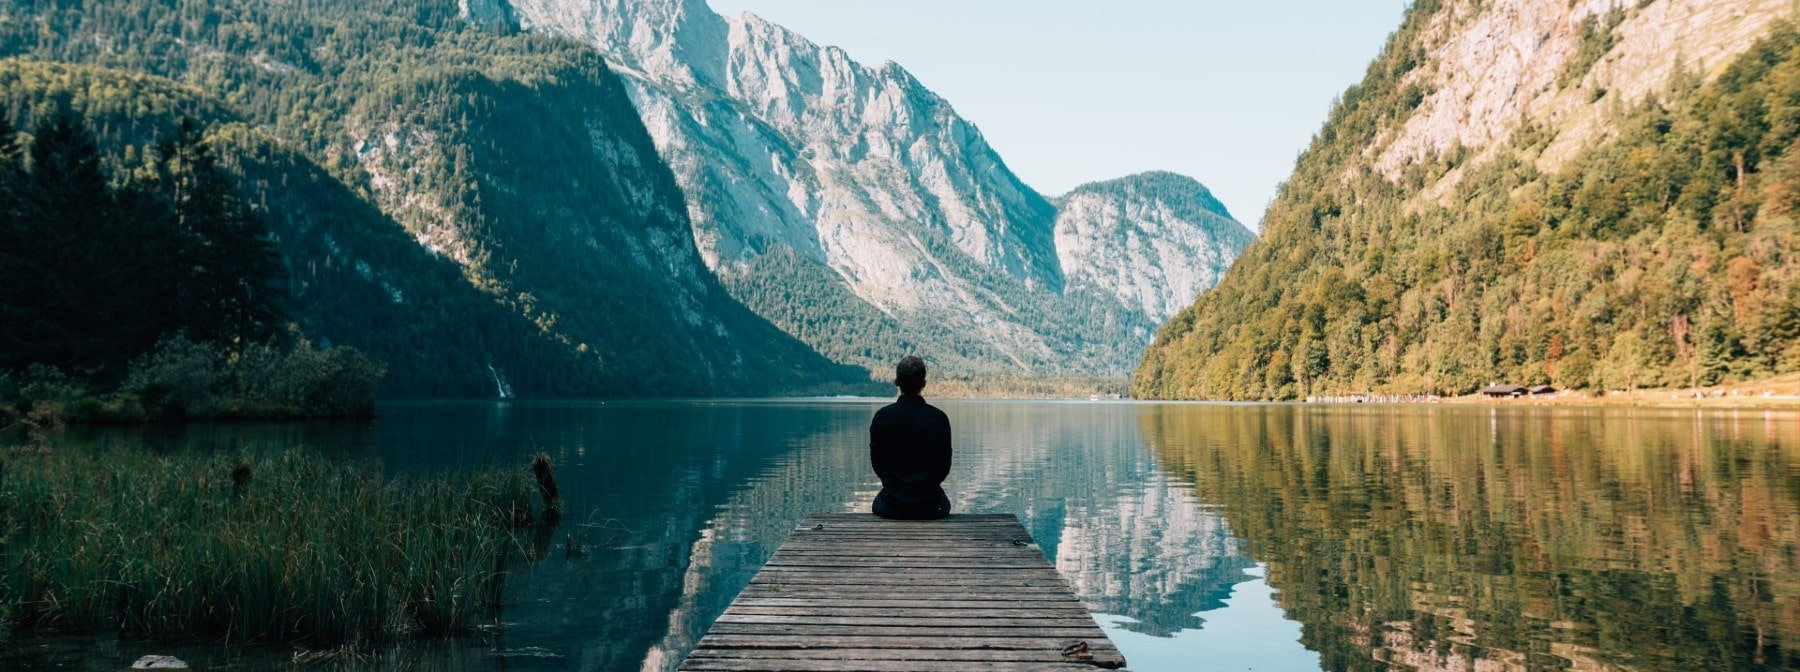 Boost Your Mood with These Mindfulness Exercises